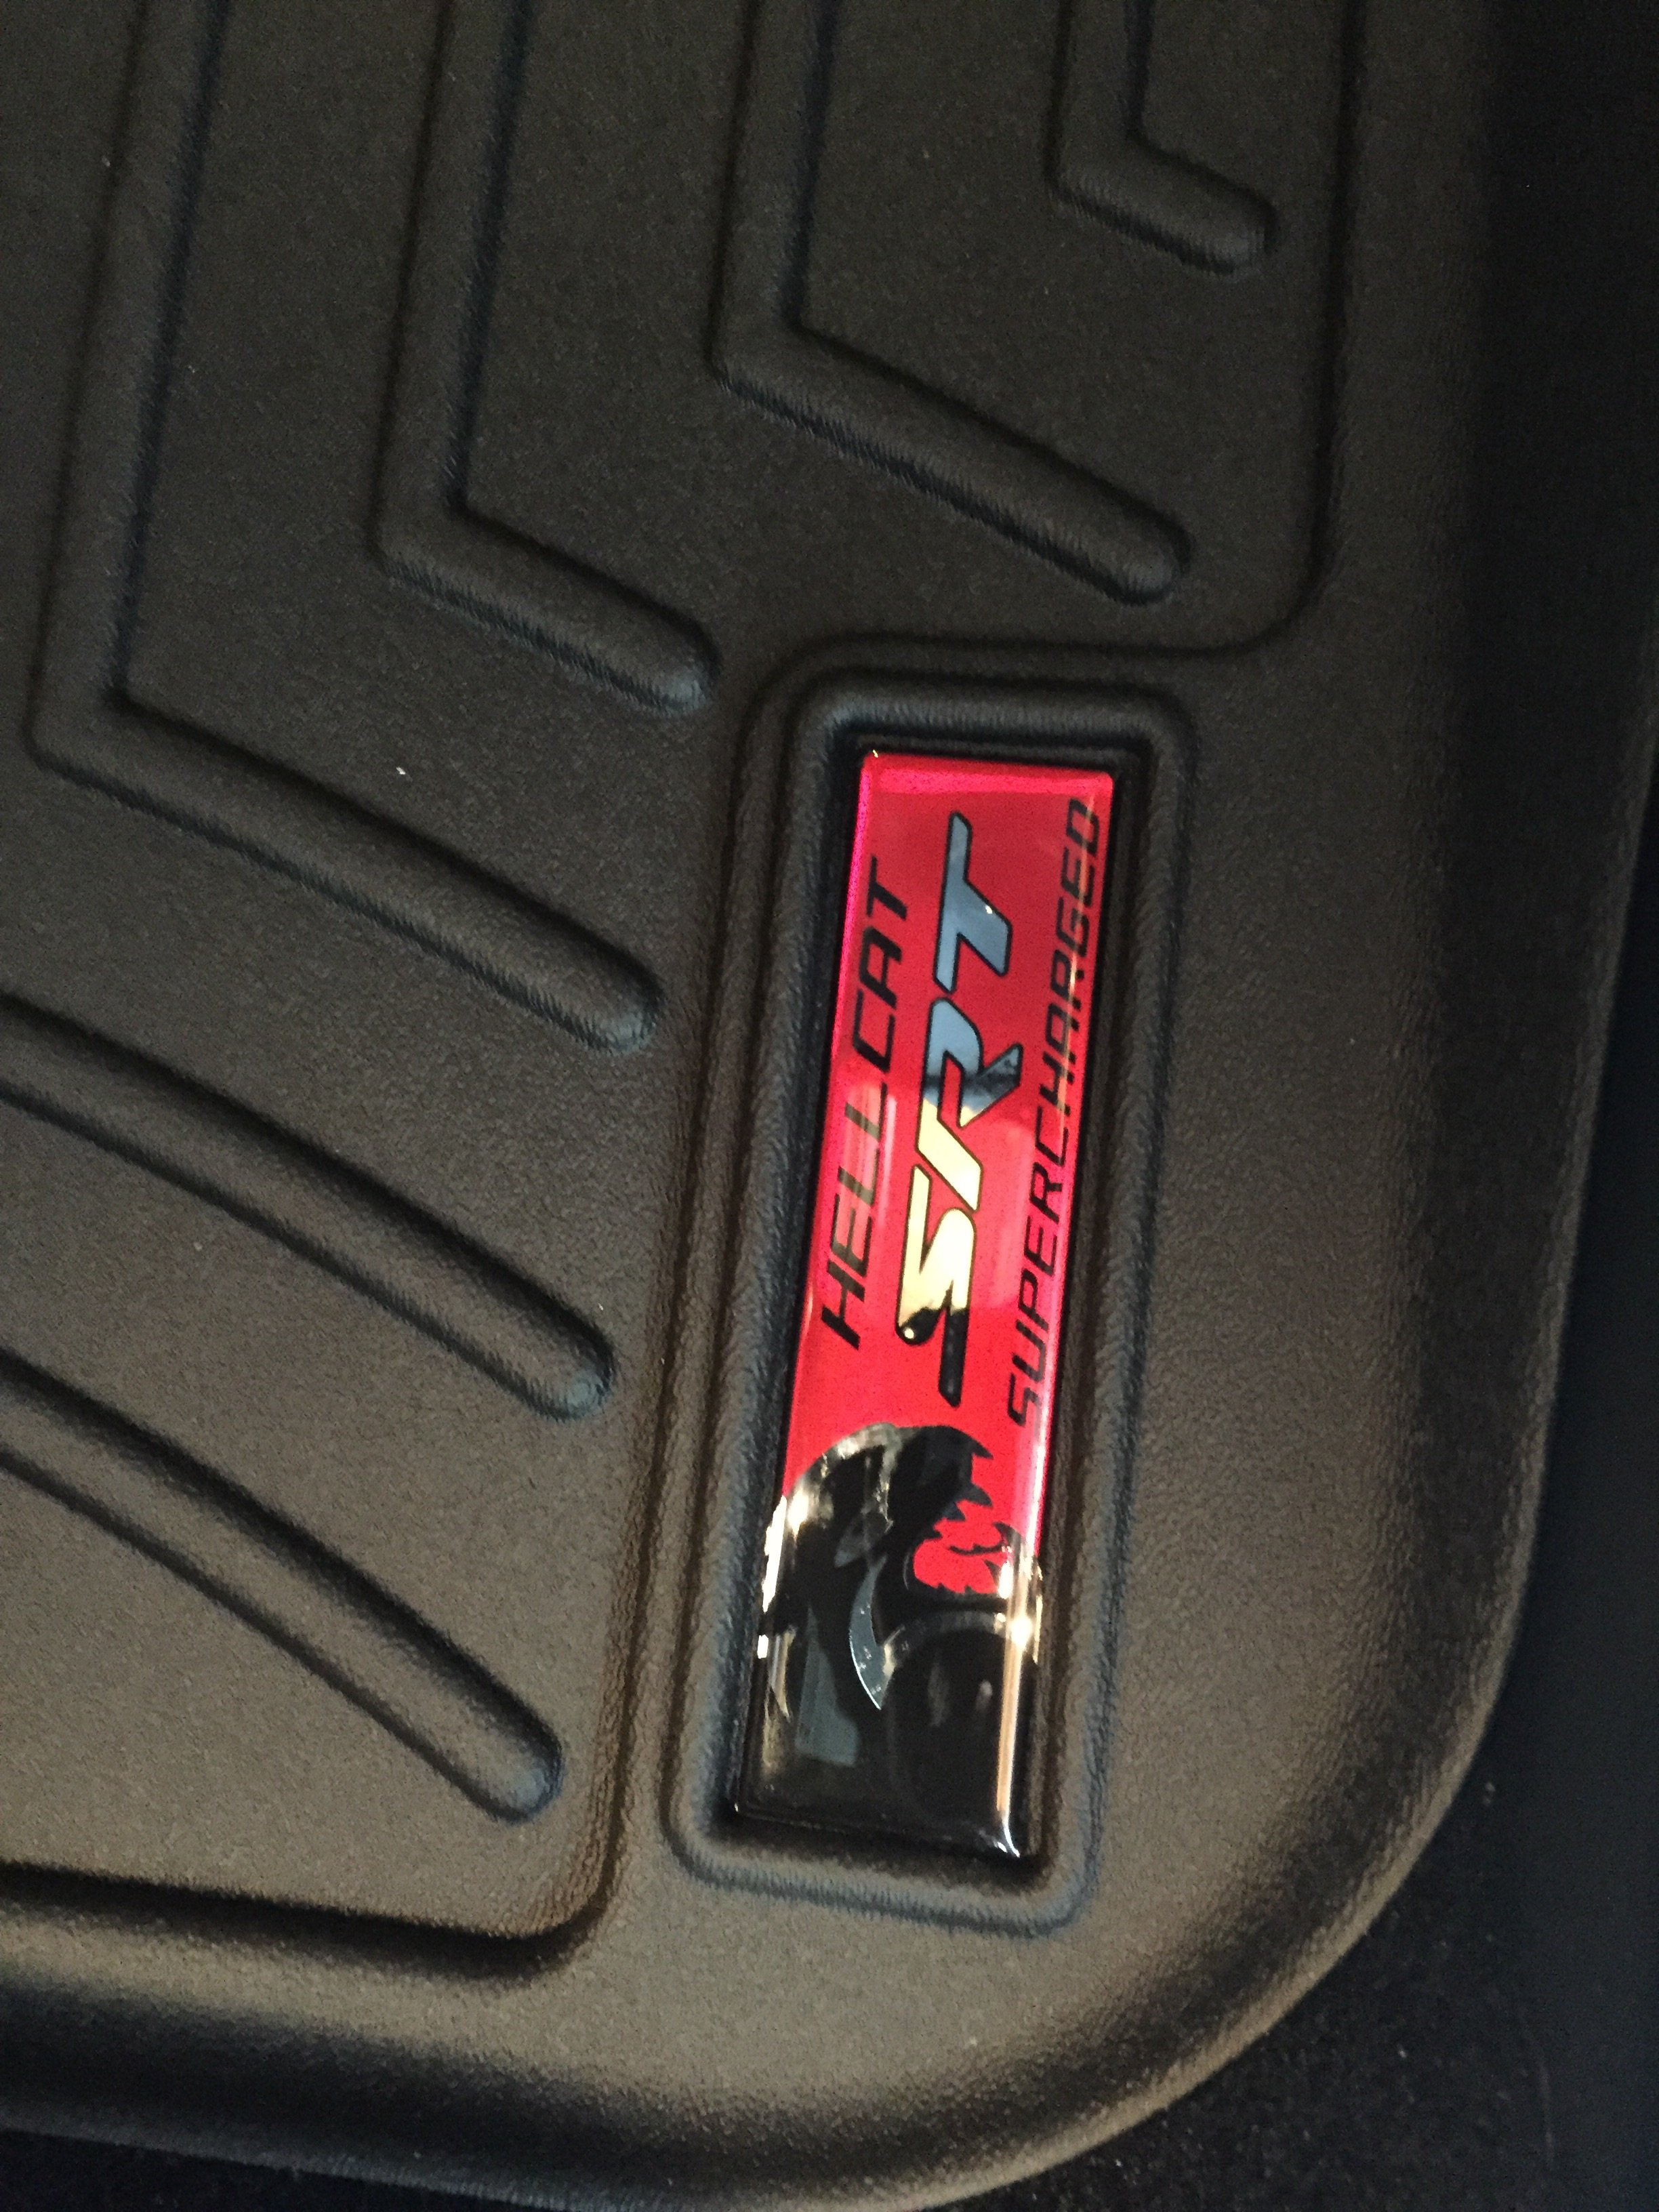 What floor mats did you get? Husky or Weathertech? | SRT Hellcat Forum